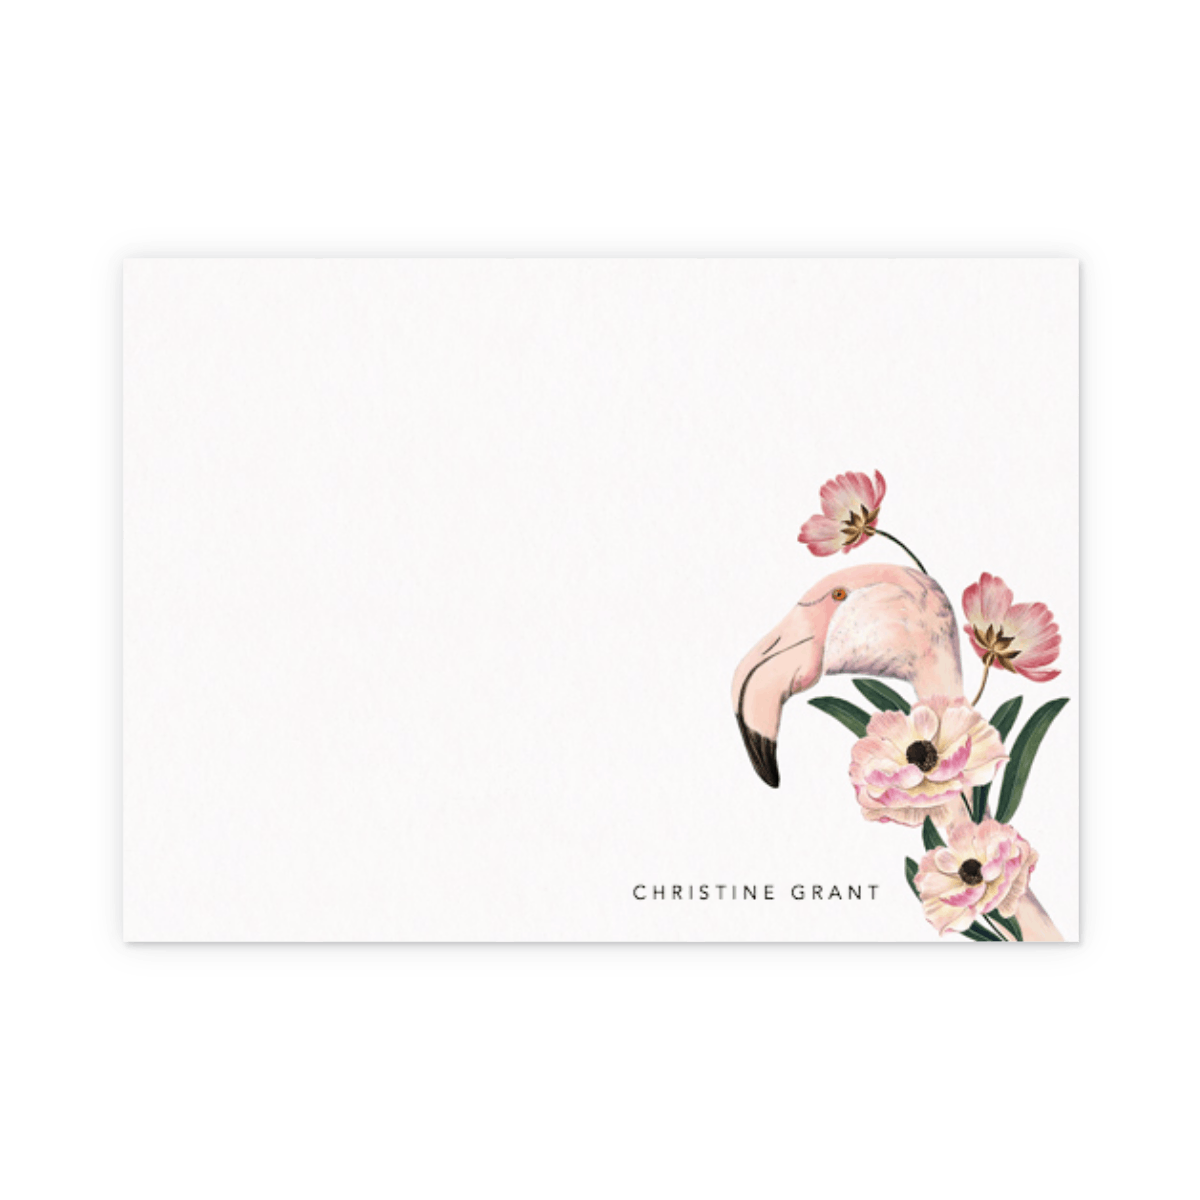 Https%3a%2f%2fwww.papier.com%2fproduct image%2f24229%2f10%2fpink flamingo 6065 front 1498039076.png?ixlib=rb 1.1